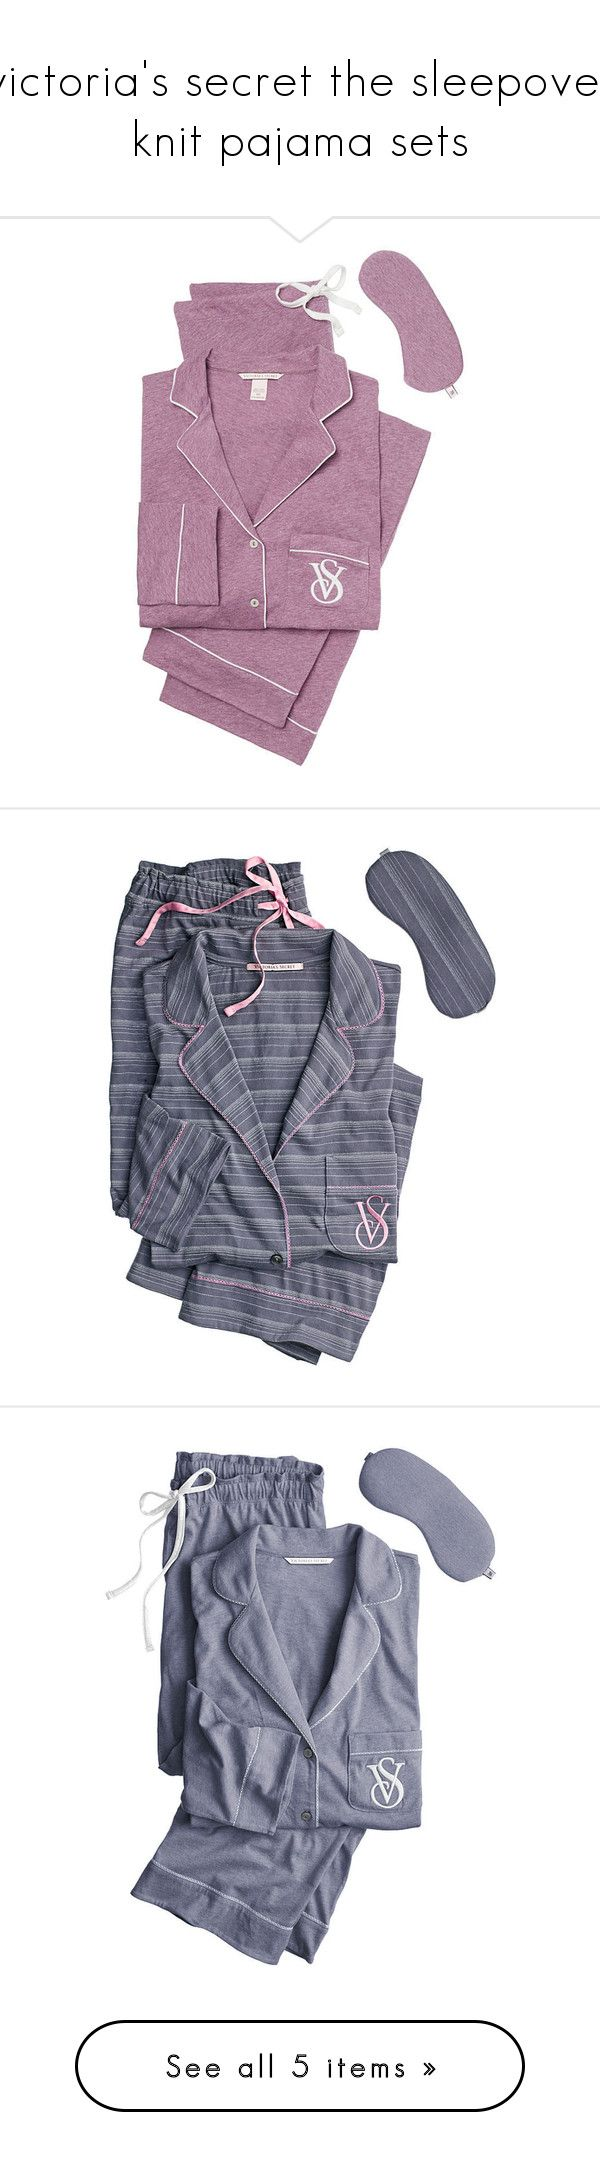 """victoria's secret the sleepover knit pajama sets"" by babyprincessdarling ❤ liked on Polyvore featuring intimates, sleepwear, pajamas, victoria secret pajamas, striped pajamas, long pajamas, short pajamas, striped pyjamas, victoria secret pyjamas and victoria's secret"